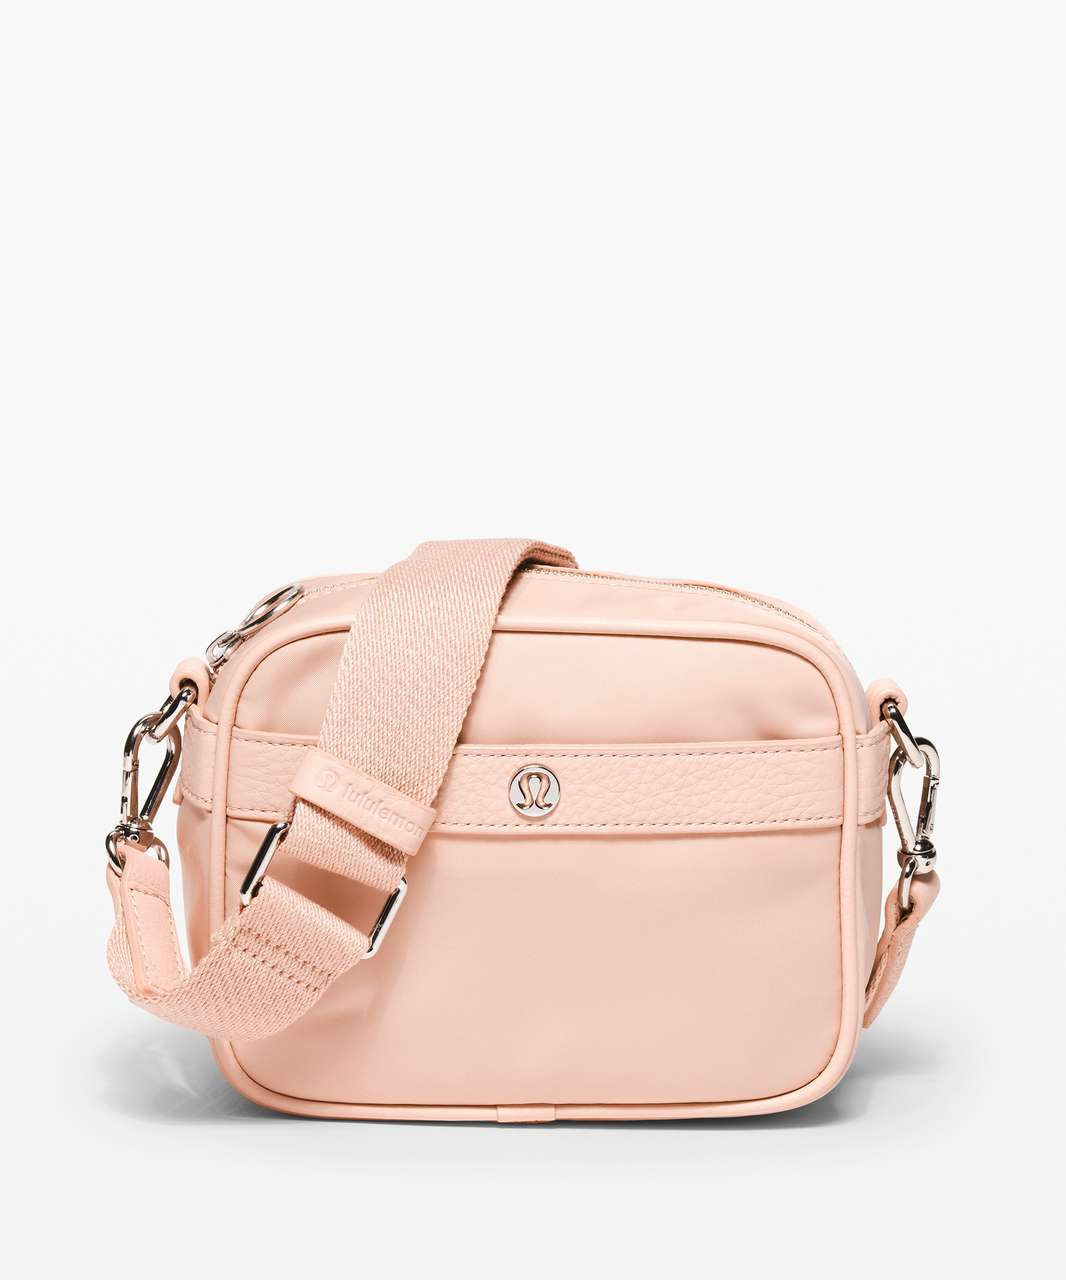 Lululemon Now and Always Crossbody *Mini 3L - Misty Shell